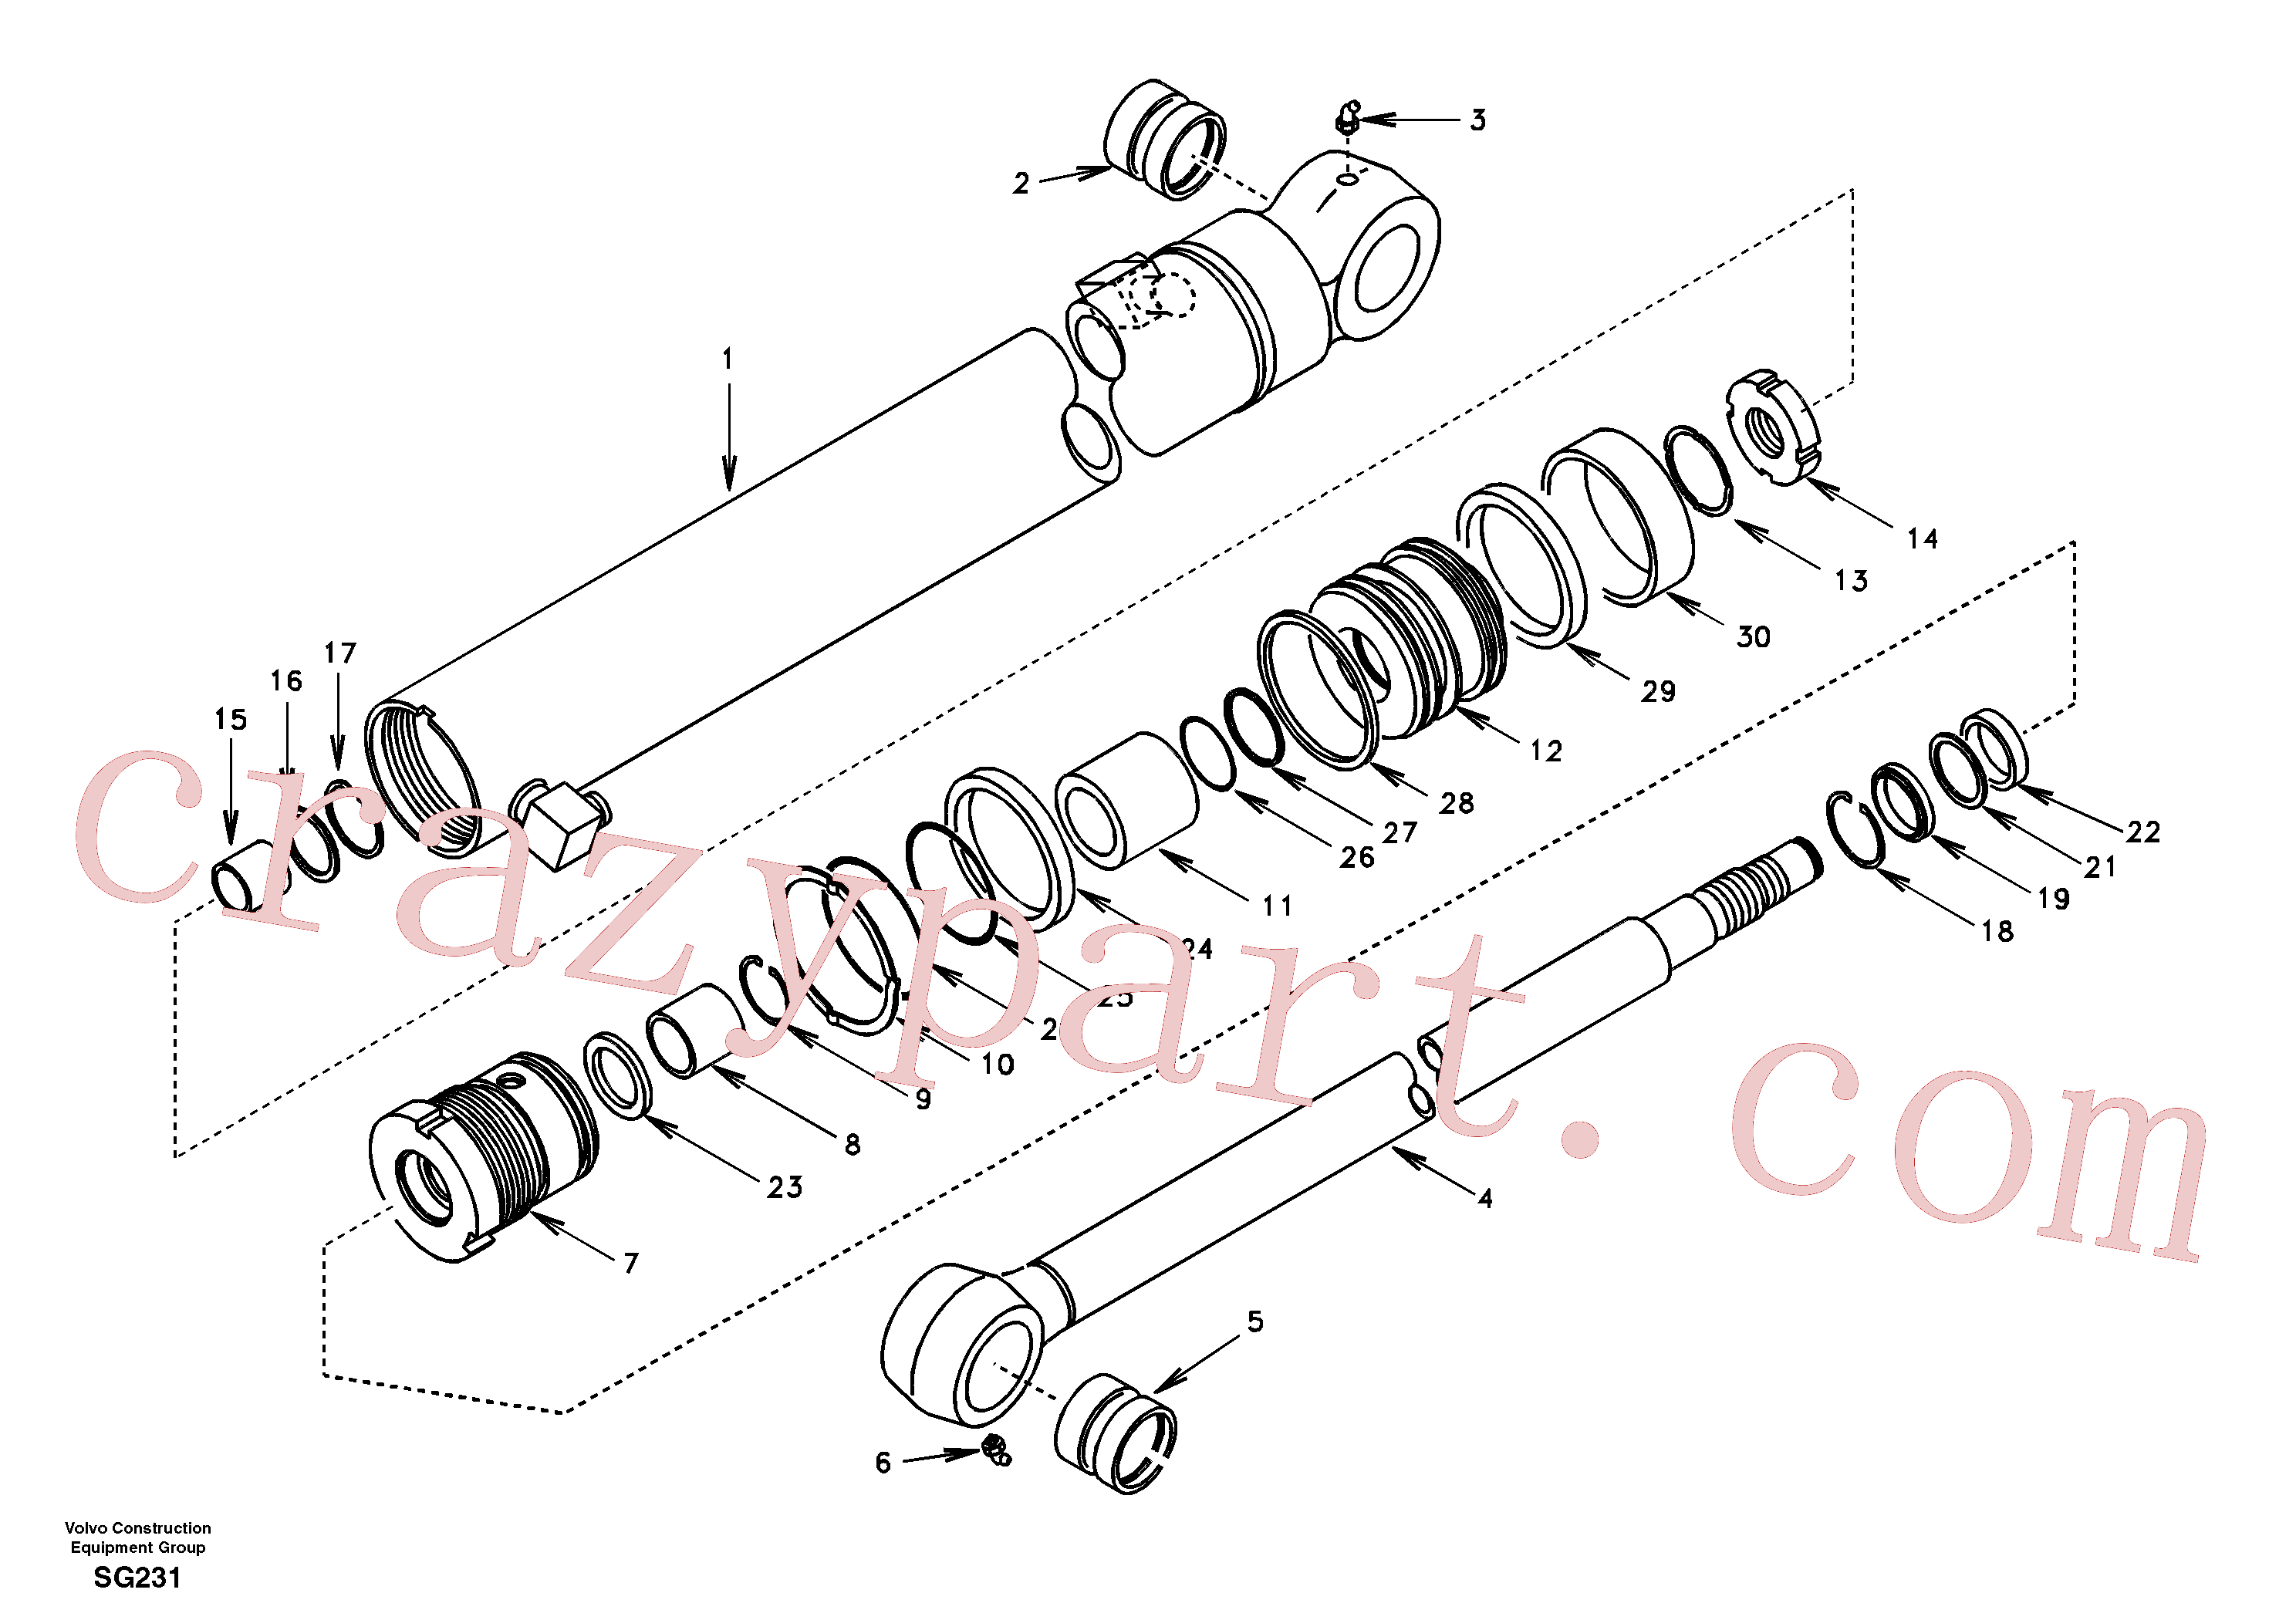 SA9612-05535 for Volvo Dipper arm cylinder(SG231 assembly)